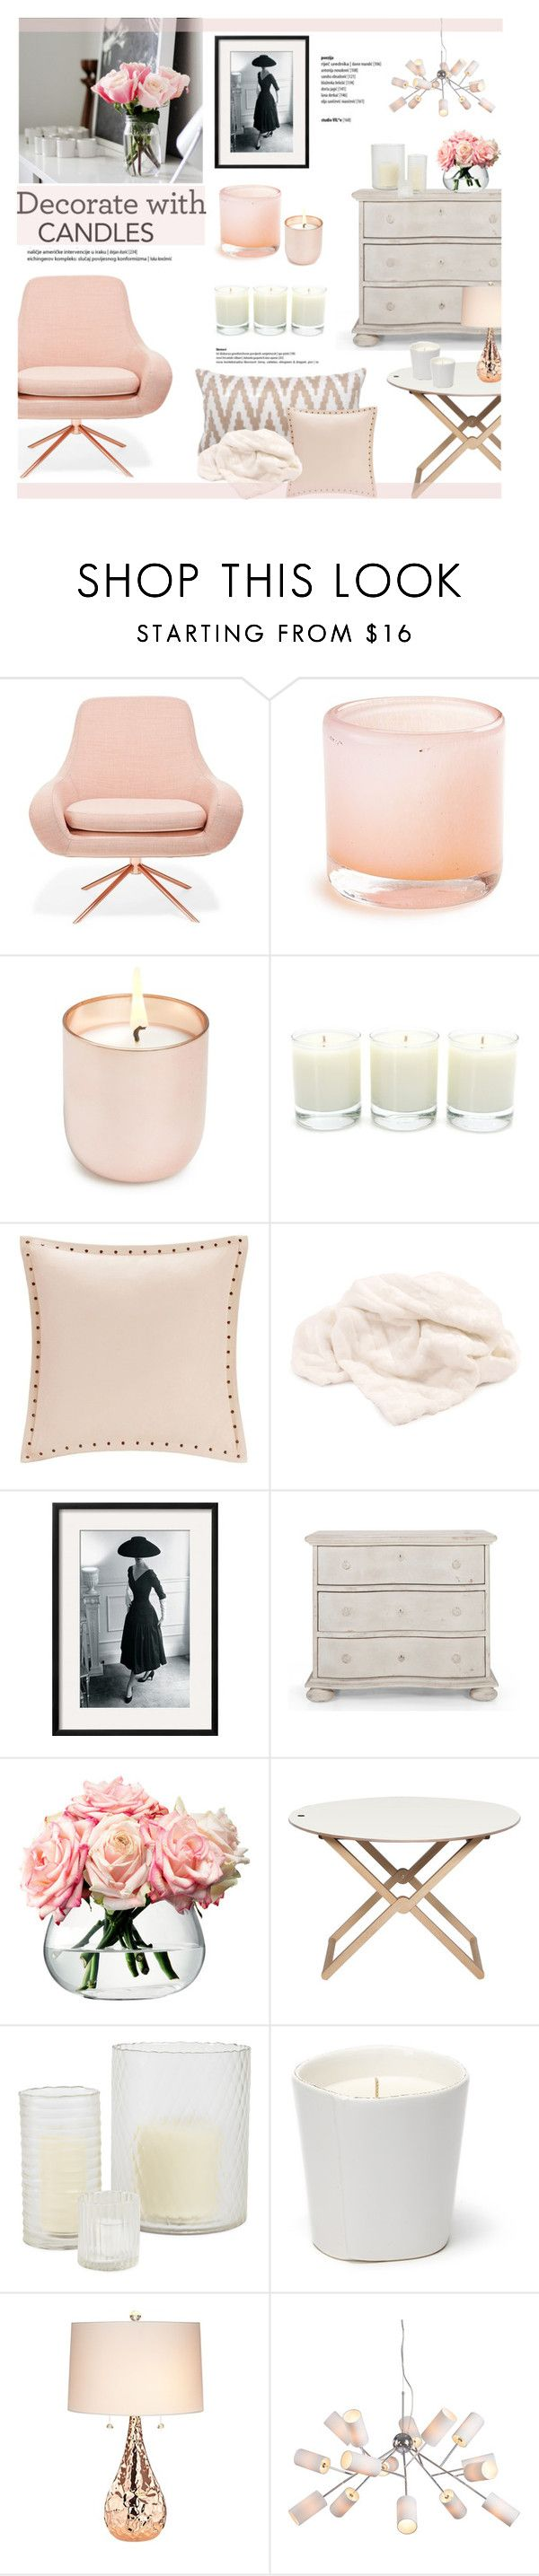 Decorate with candles by helenevlacho on polyvore featuring interior interiors interior design